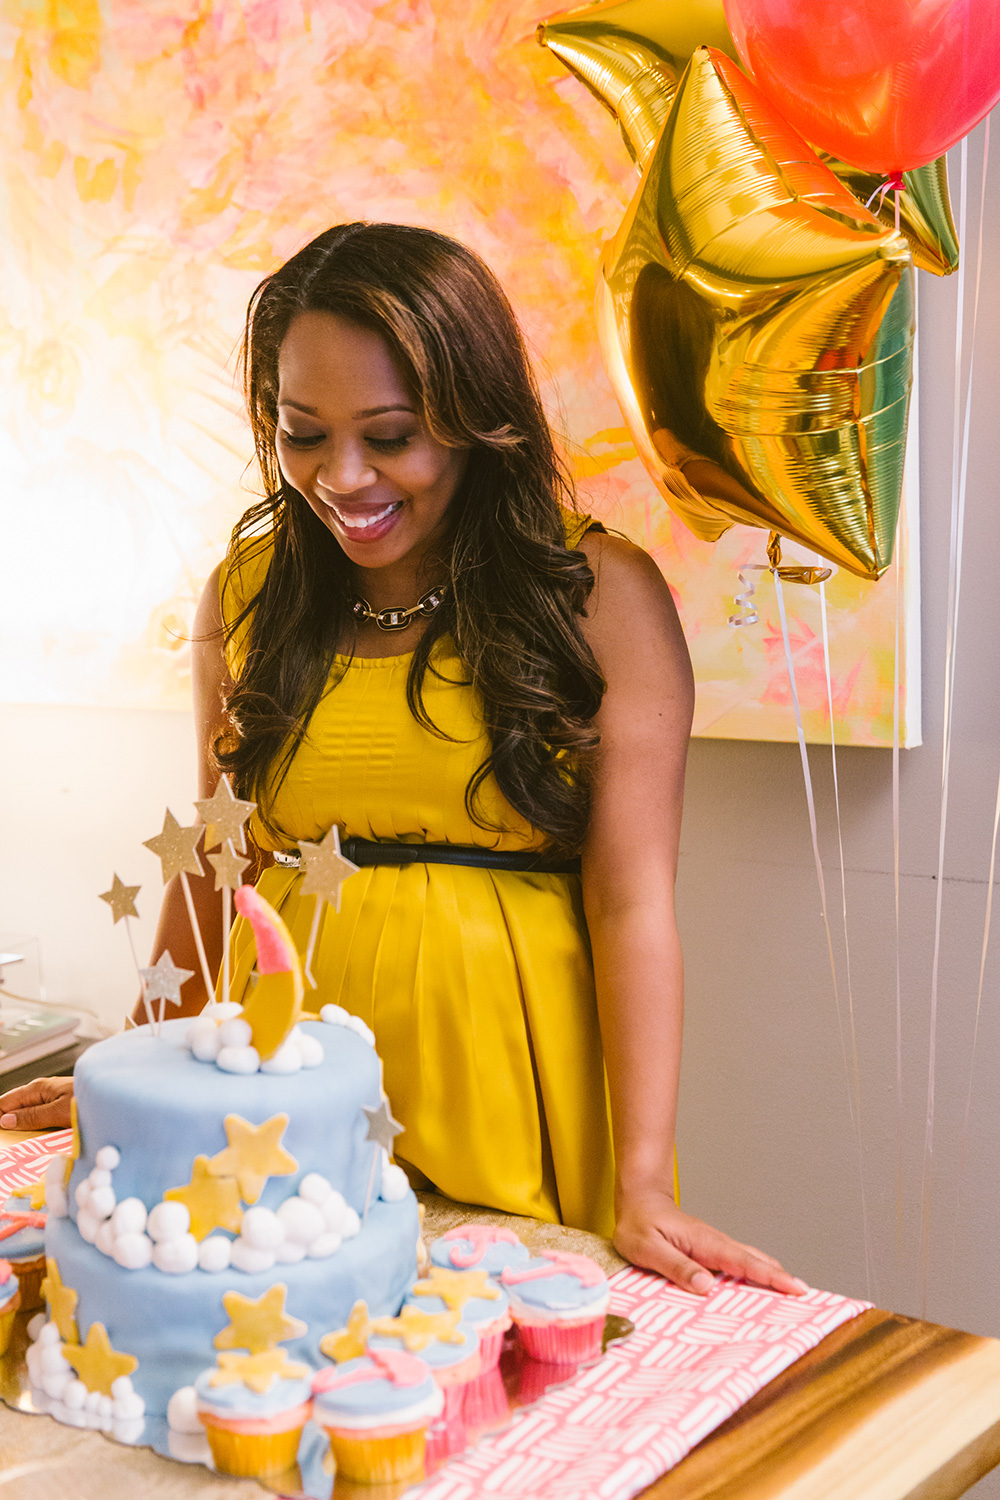 WEB_2015_April_BabyShower_EuniceDockery_0408.jpg